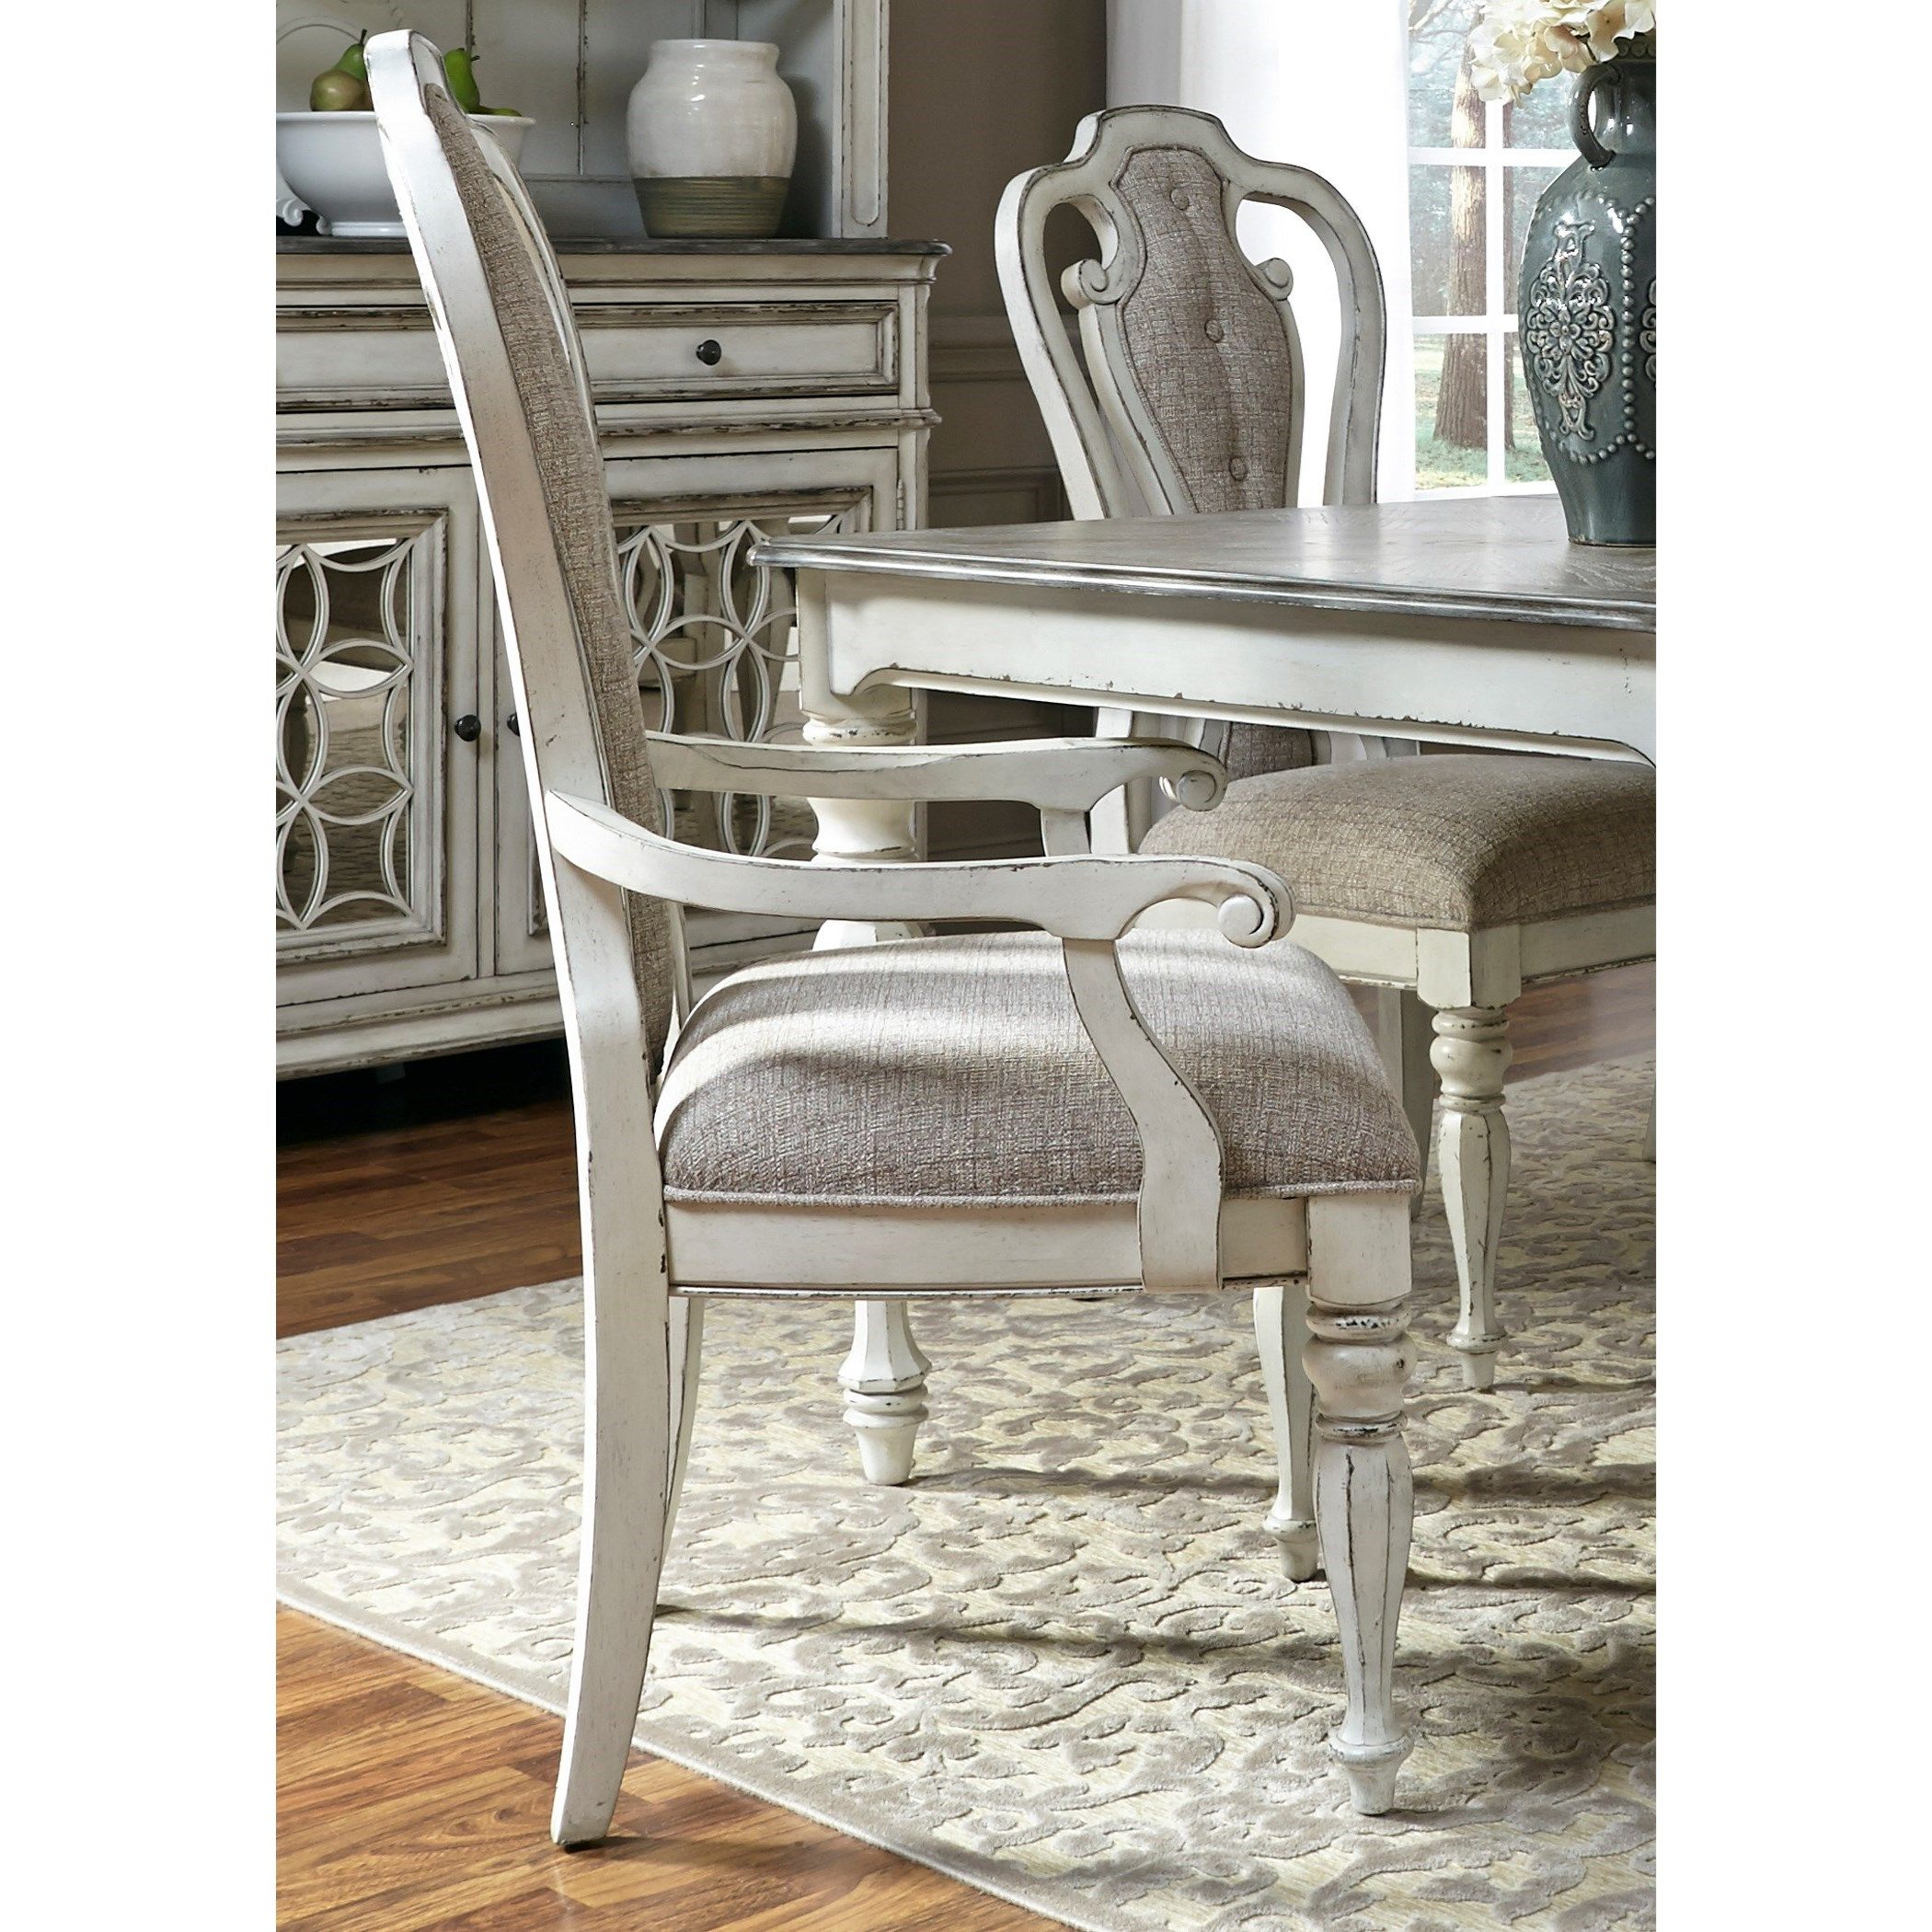 Magnolia Manor Dining Splat Back Arm Chair by Liberty Furniture at